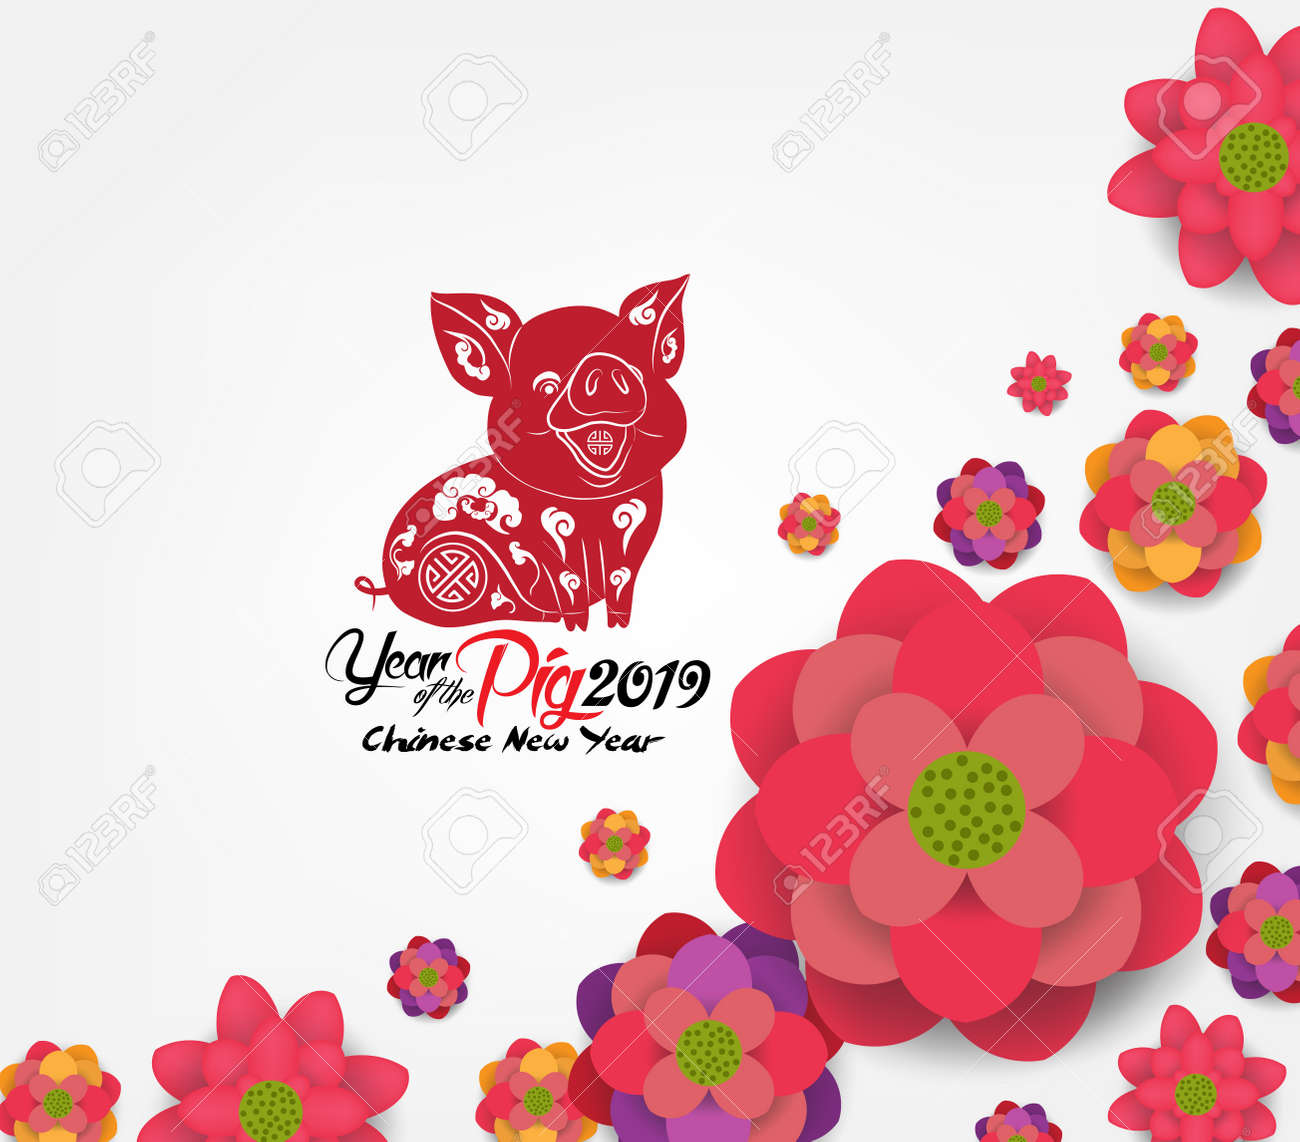 Chinese New Year 2019 Plum Blossom Background Year Of The